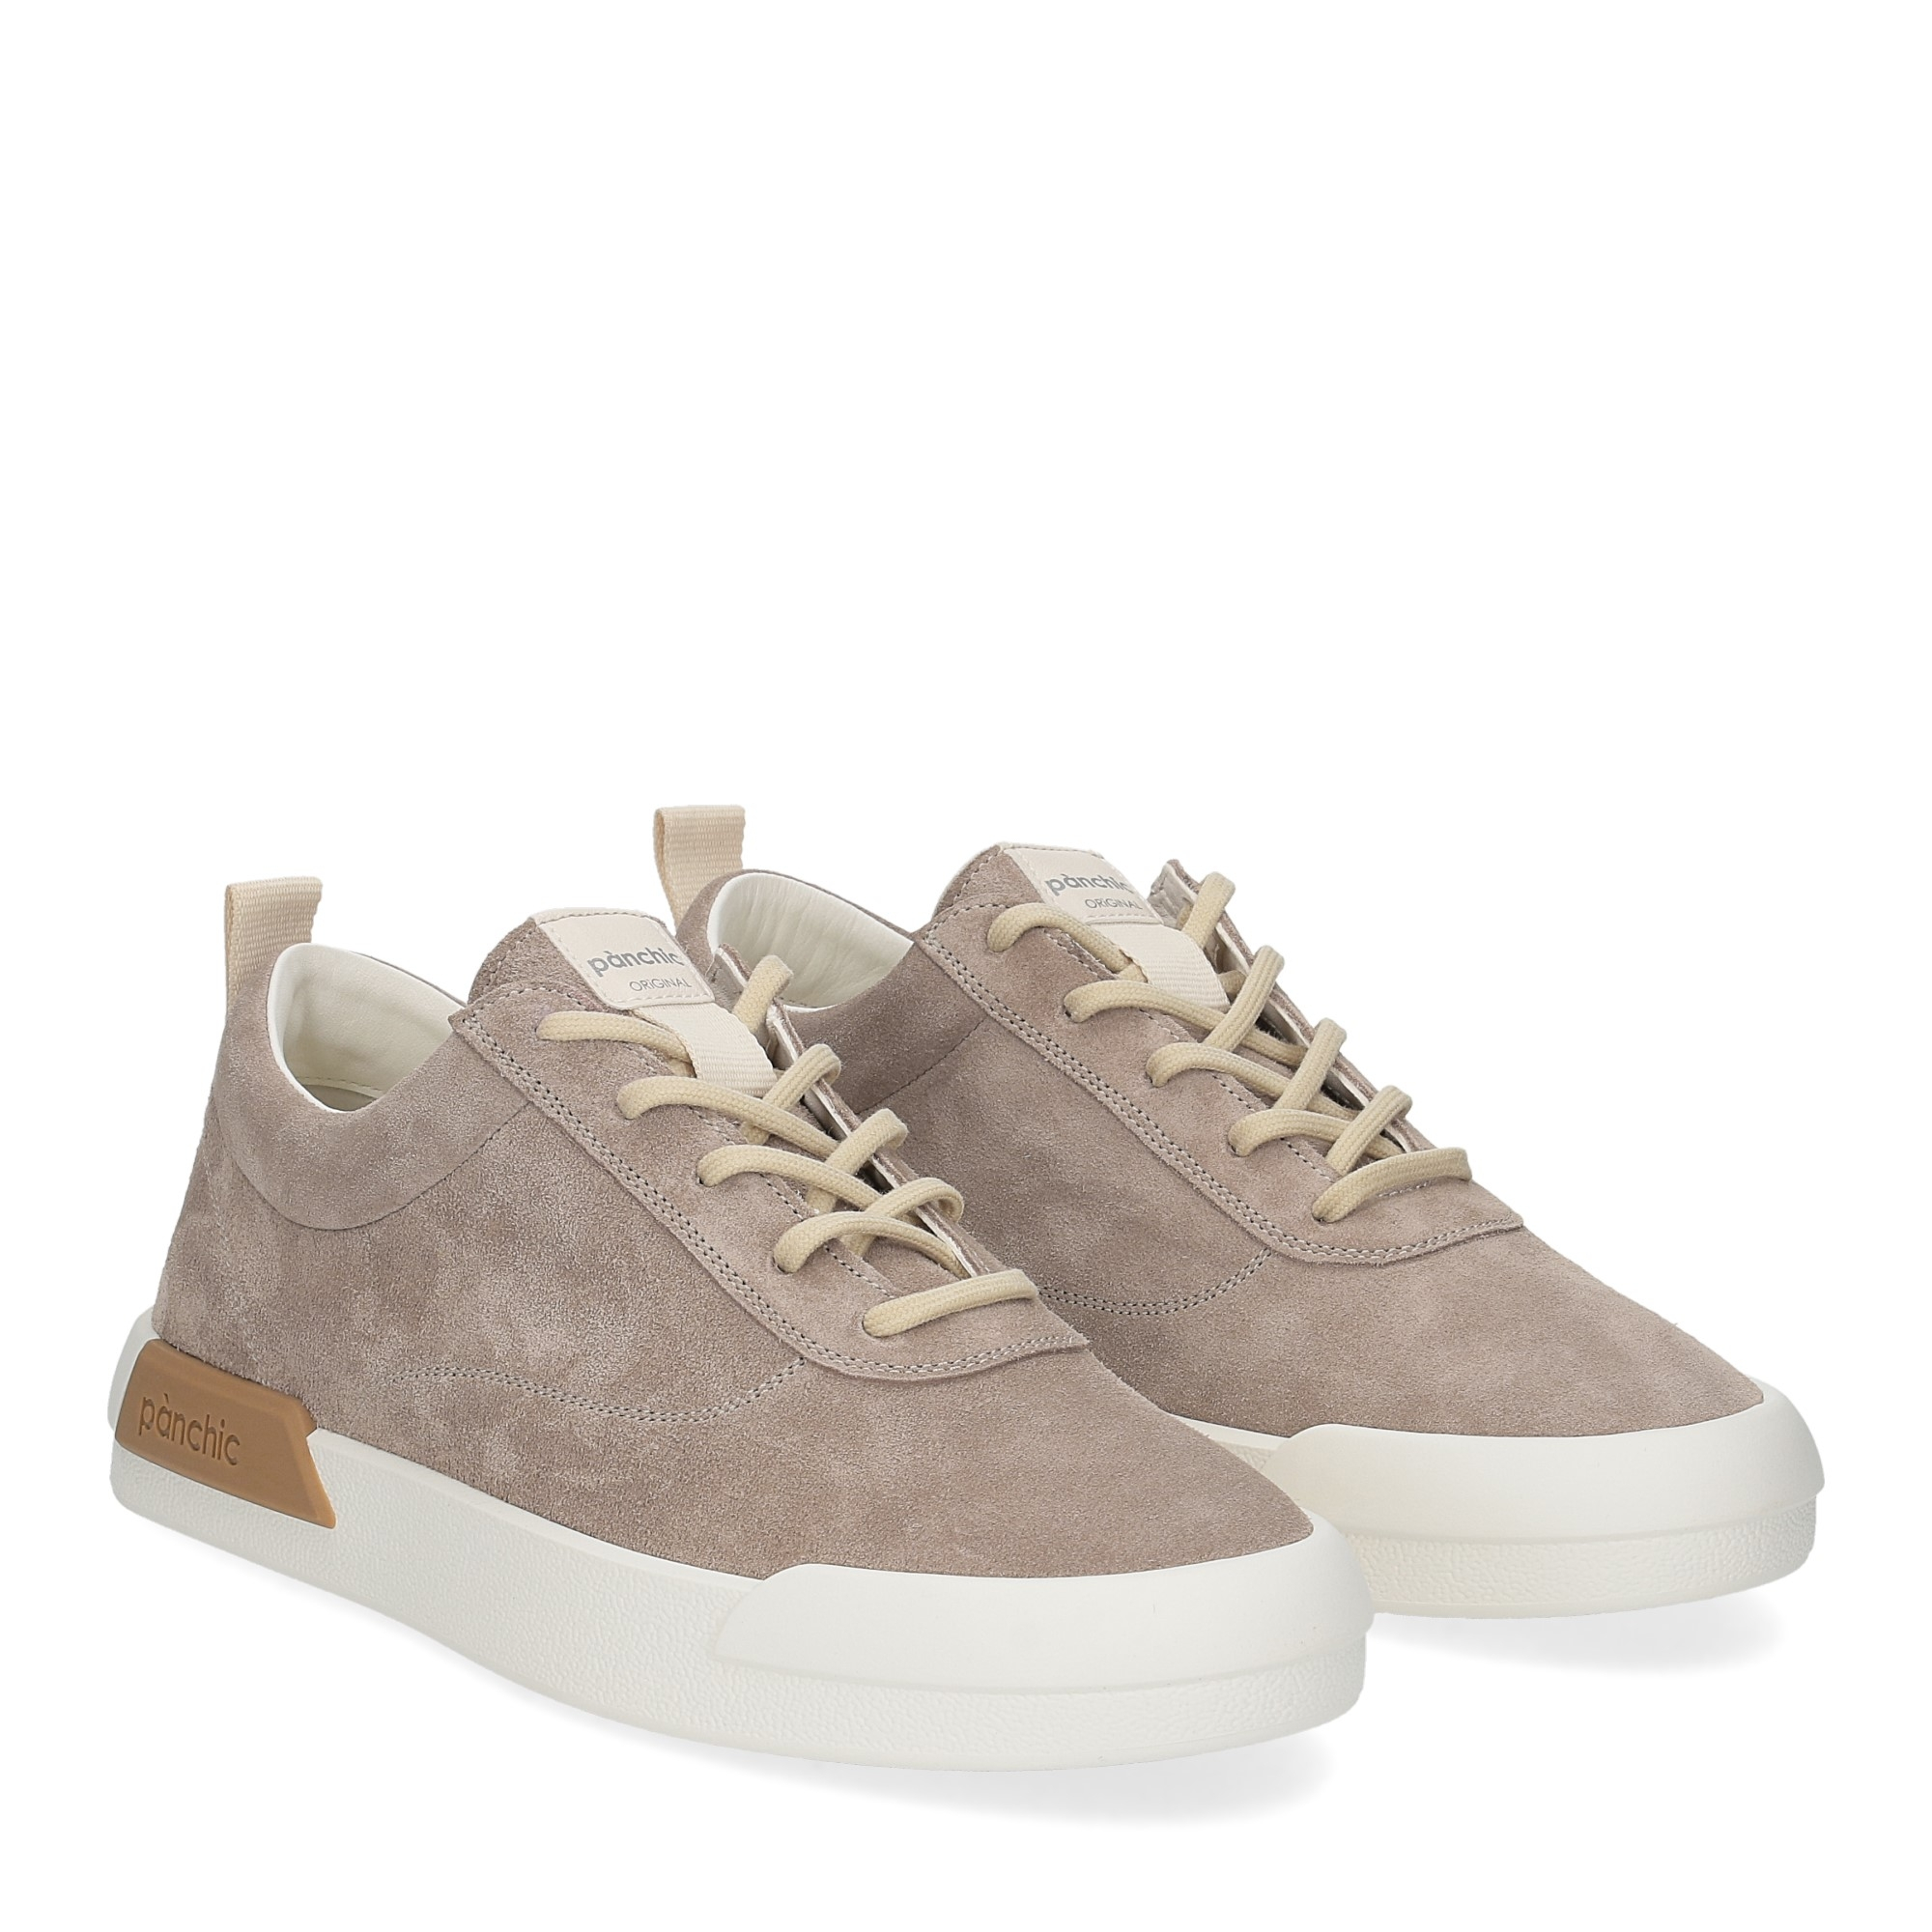 Panchic P11M suede earth frost